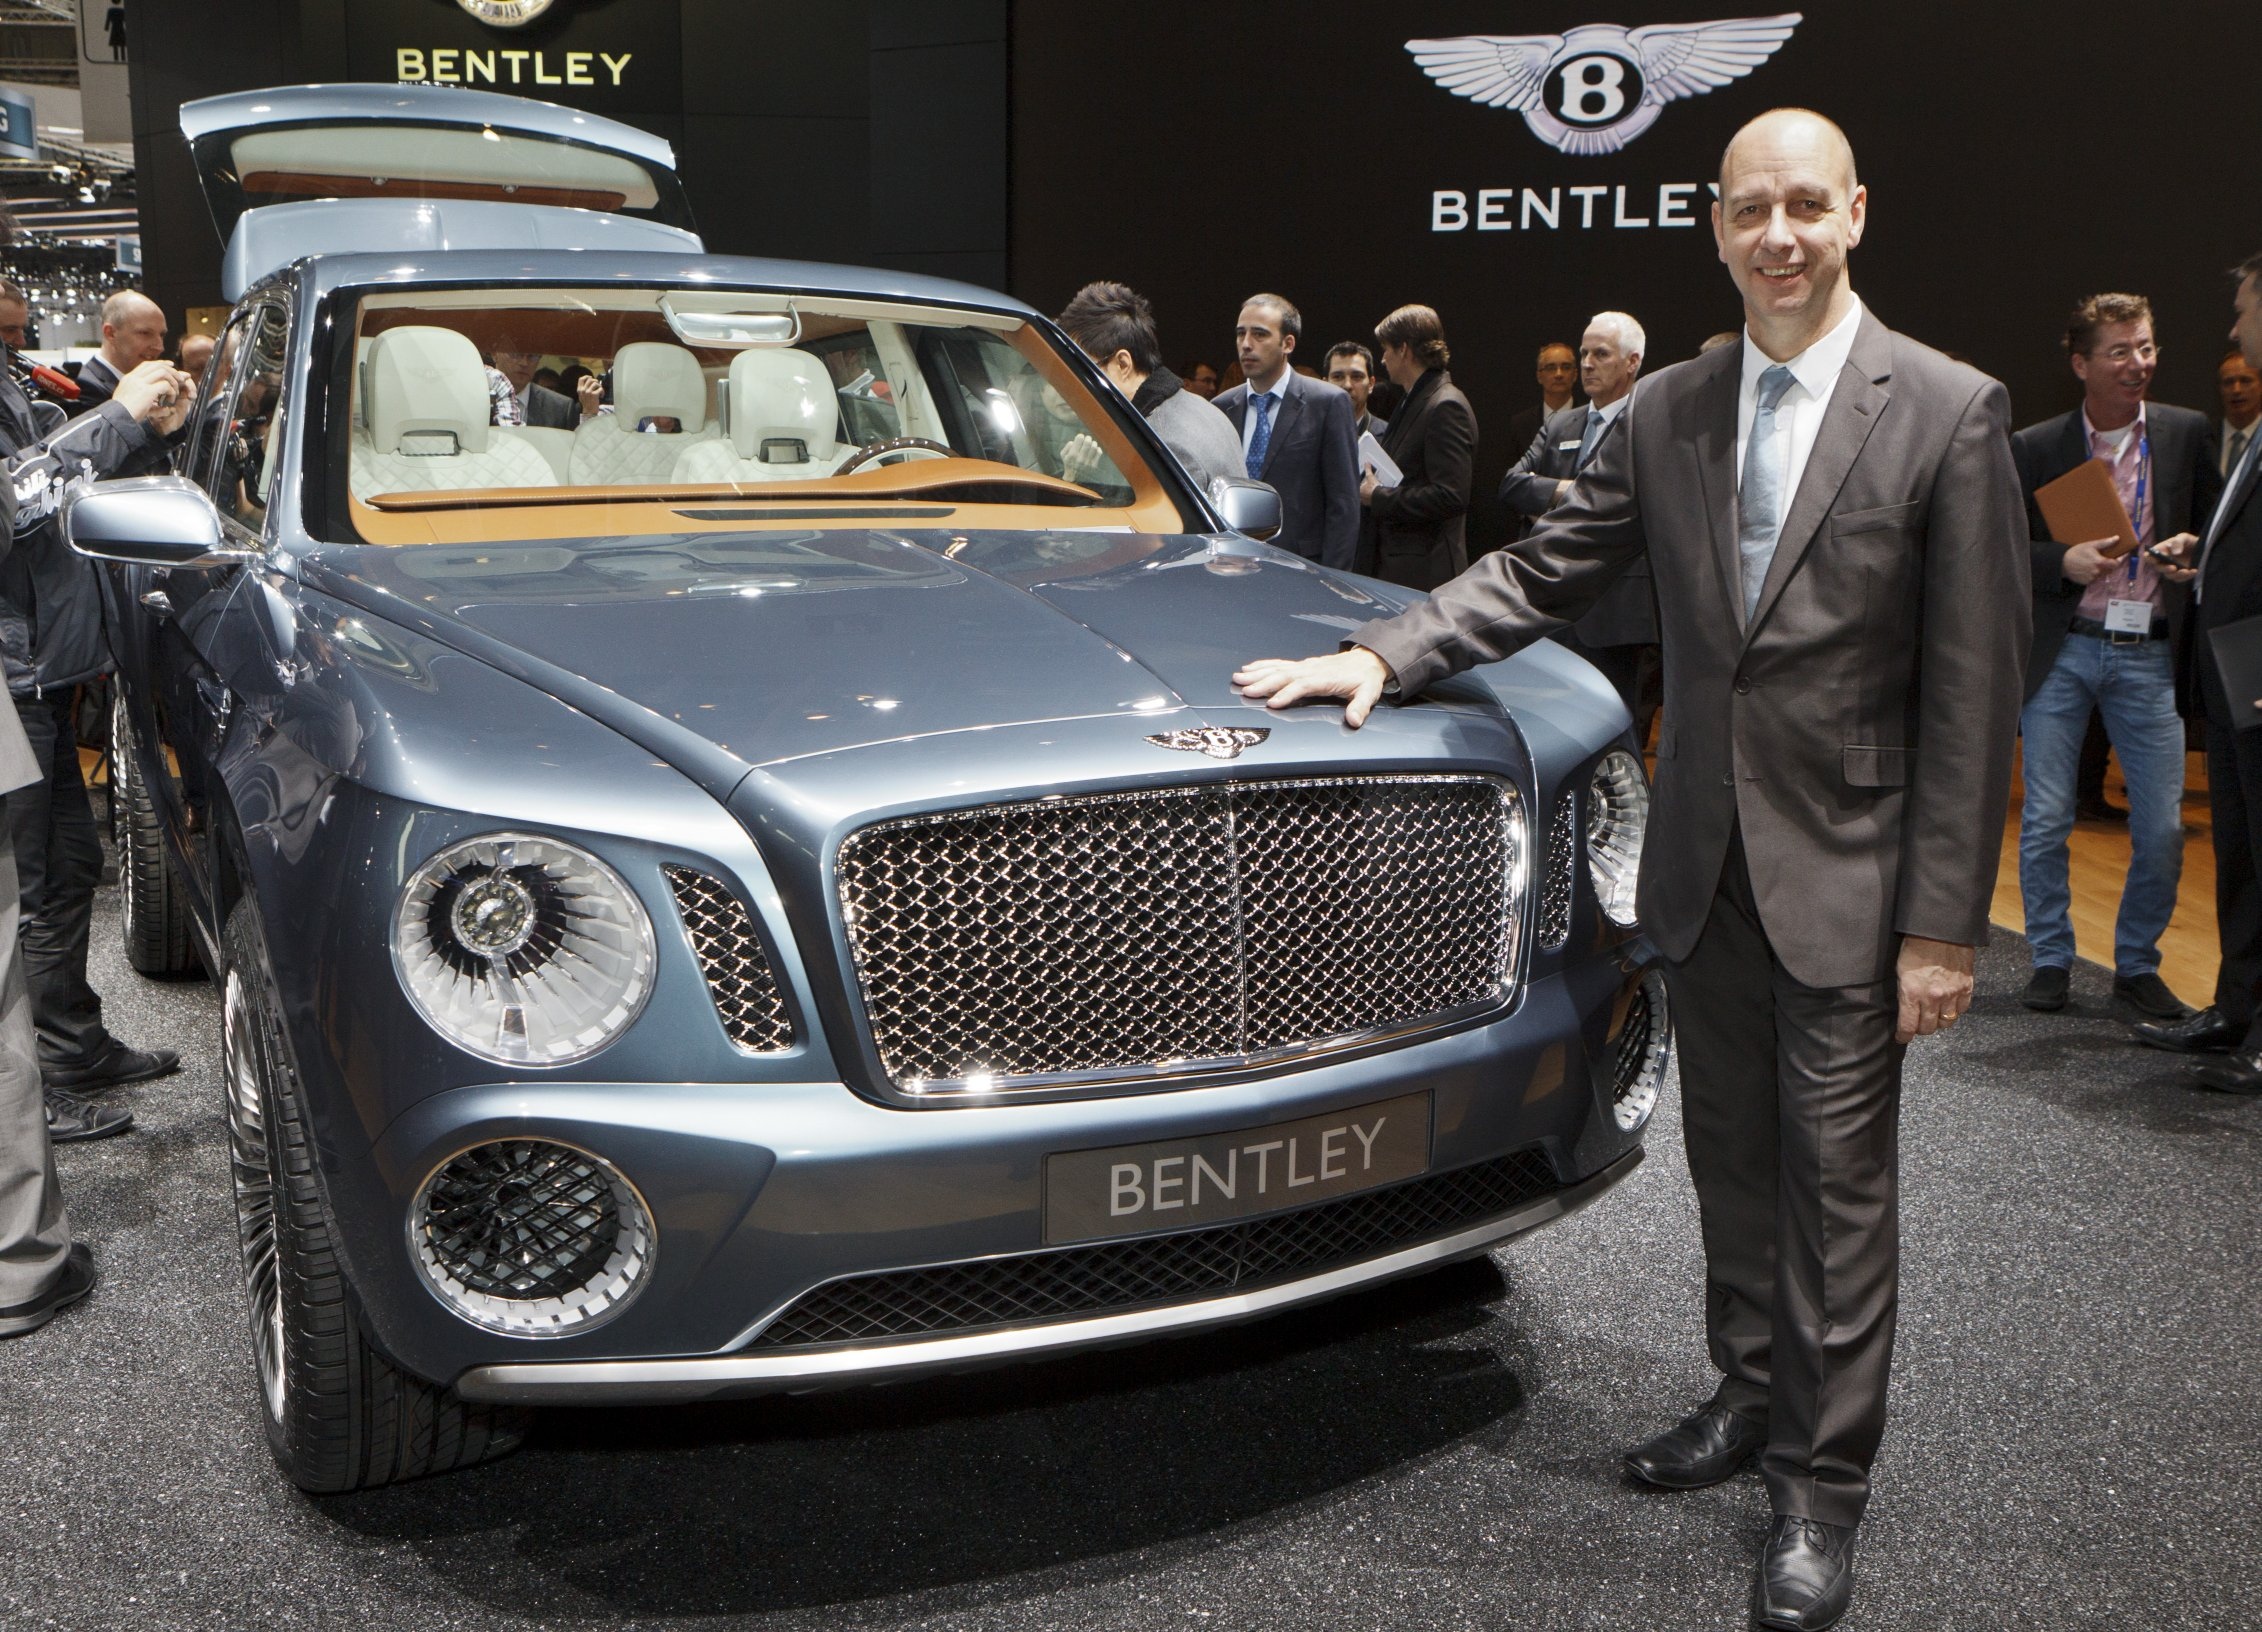 2012 Bentley EXP 9 F SUV Show (Photo 9 of 10)